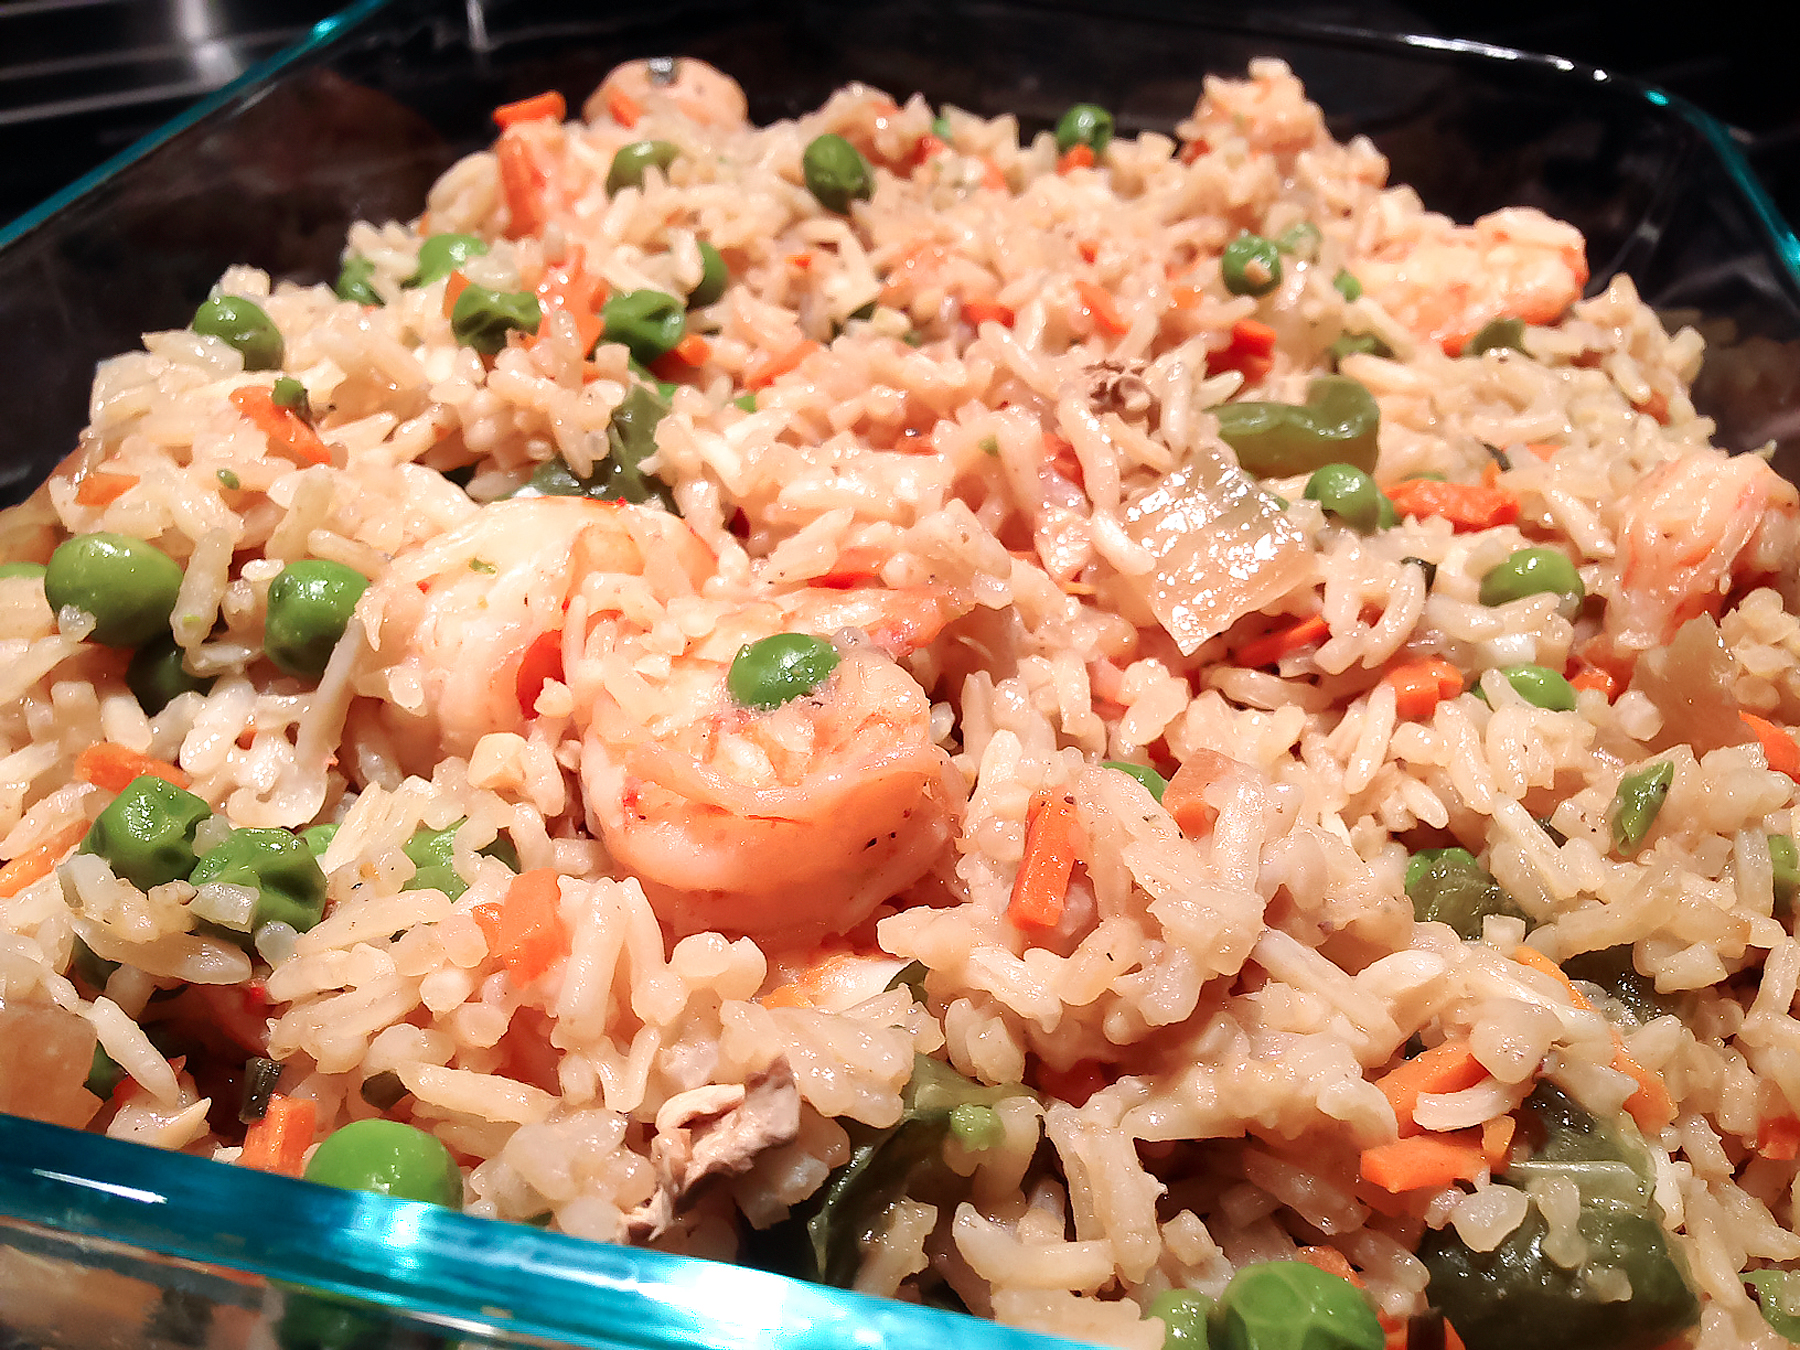 BC-Lets-Cook-shrimp-fried-rice